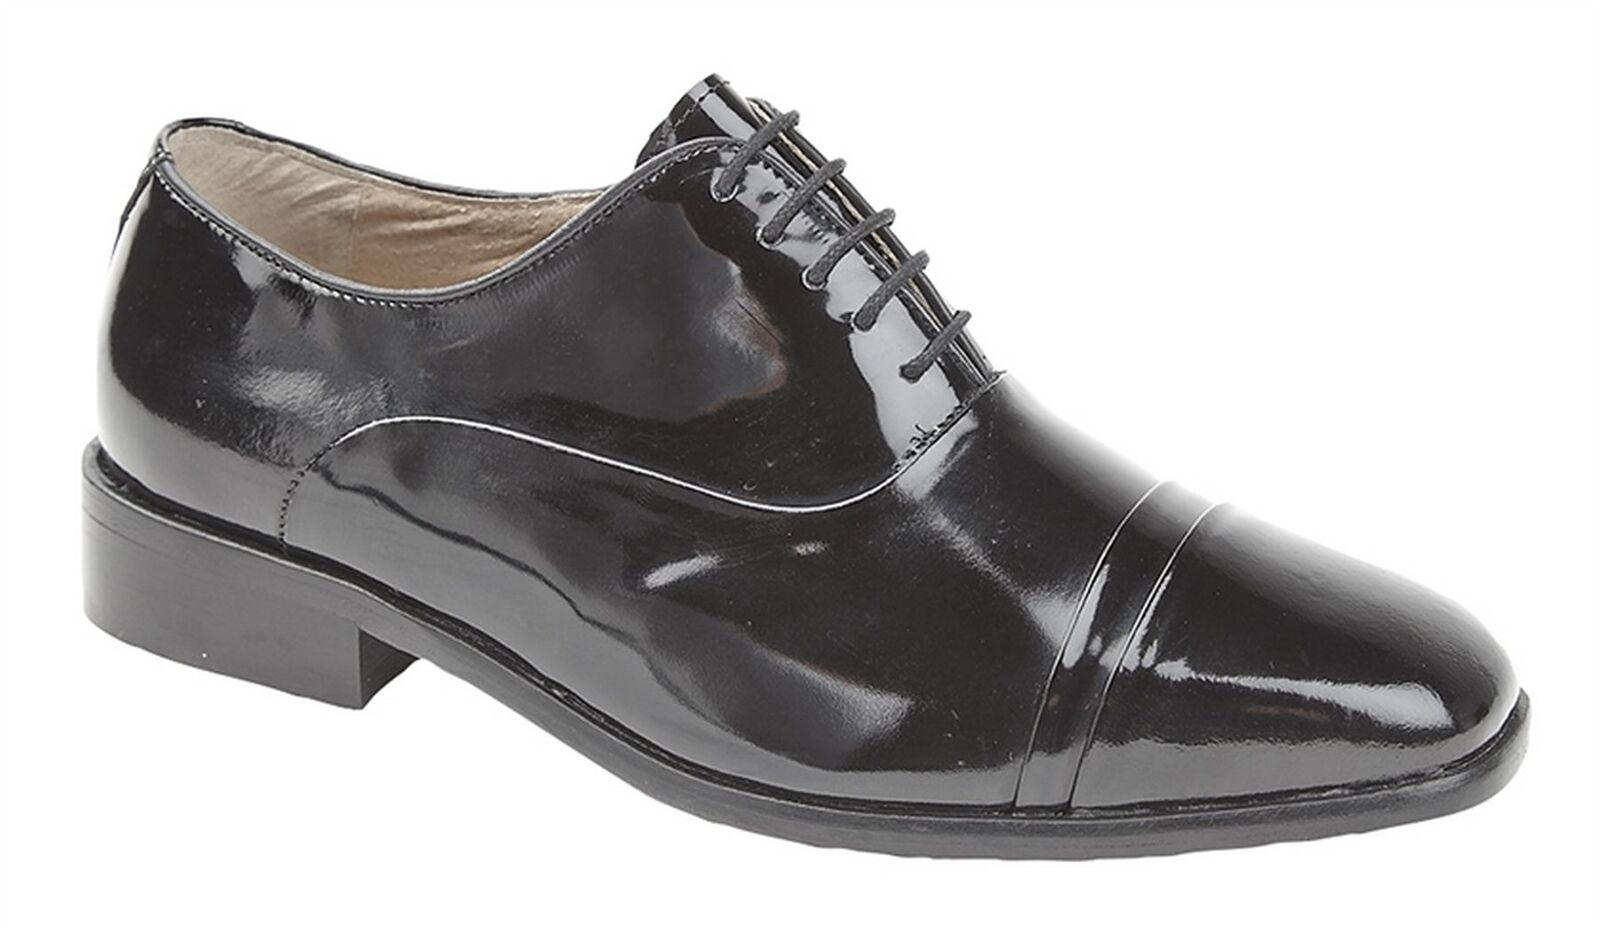 Mens shoes Coated Leather Sole Hi Shine Lace Up Oxford Formal Dress